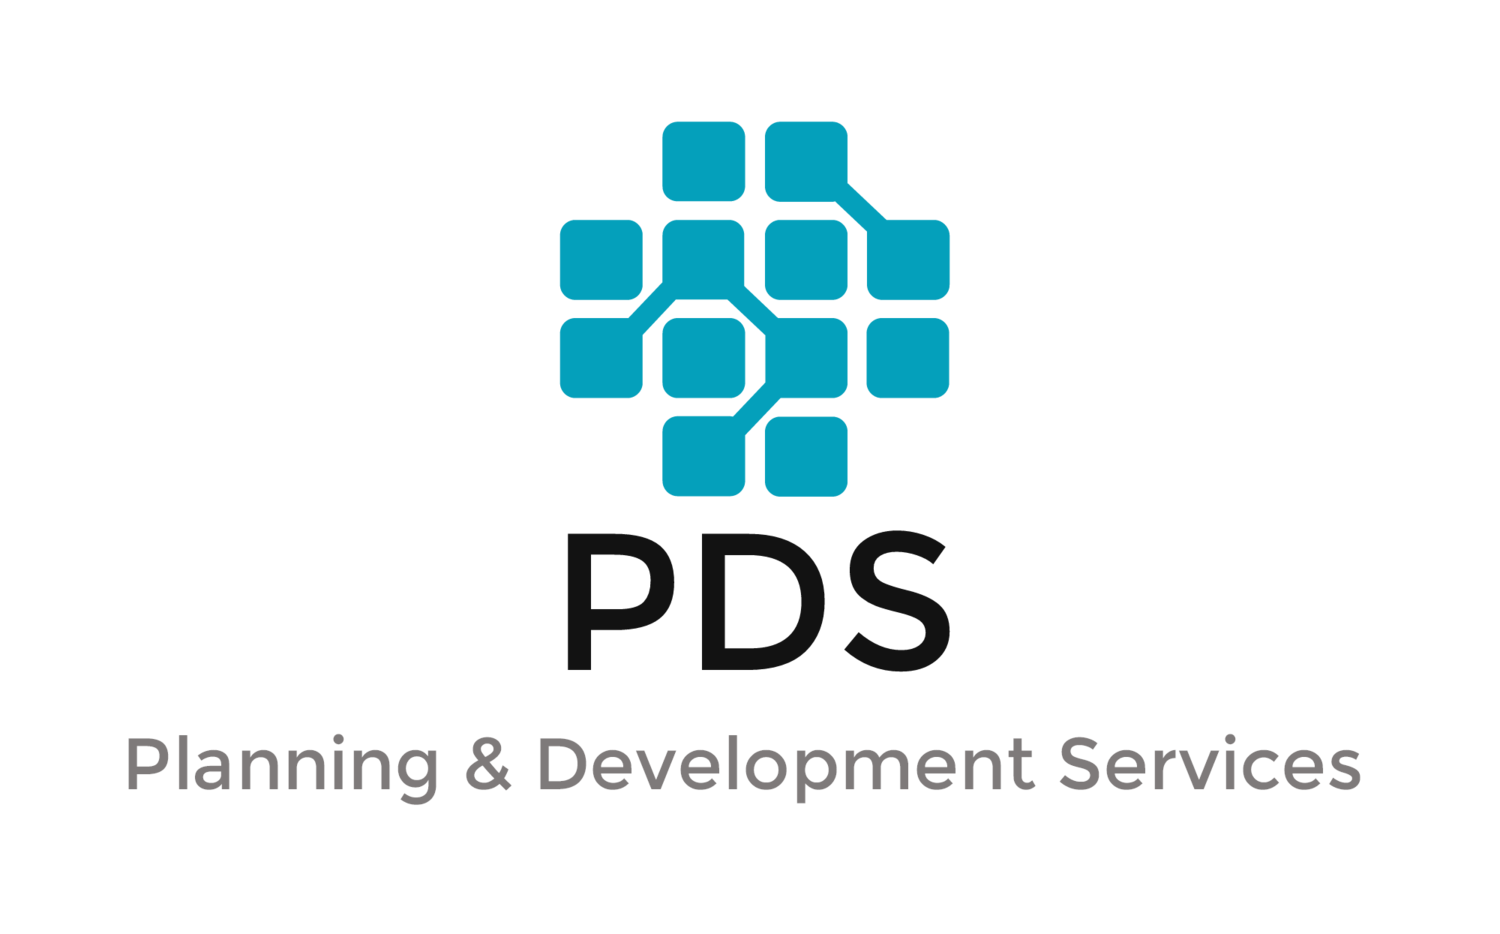 PDS - Planning and Development Services